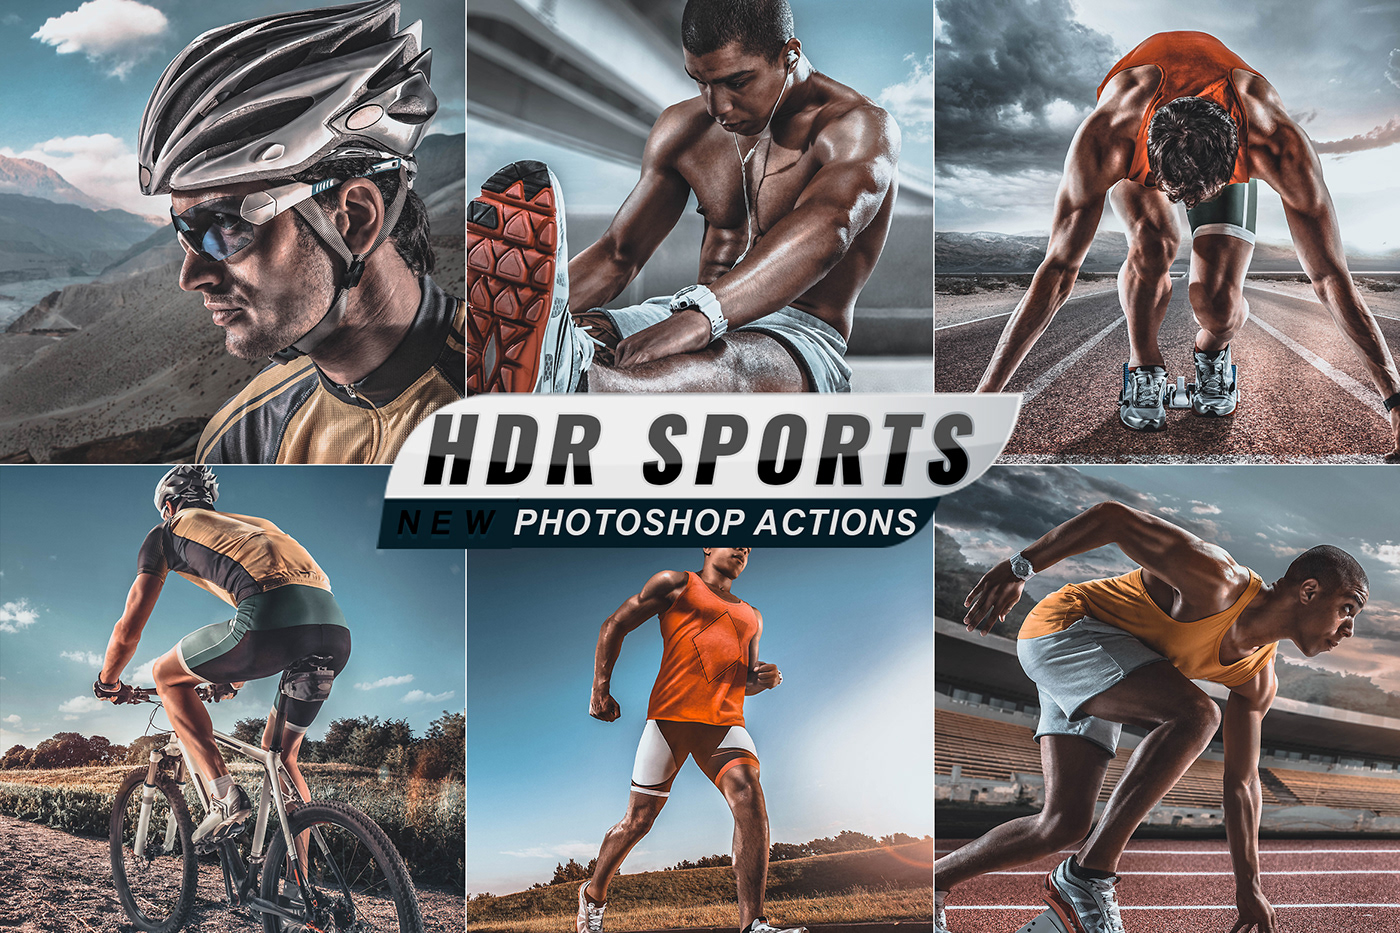 blogger hdr actions hdr fitness hdr lightroom hdr mobile HDR presets hdr sports insta instagram Photography